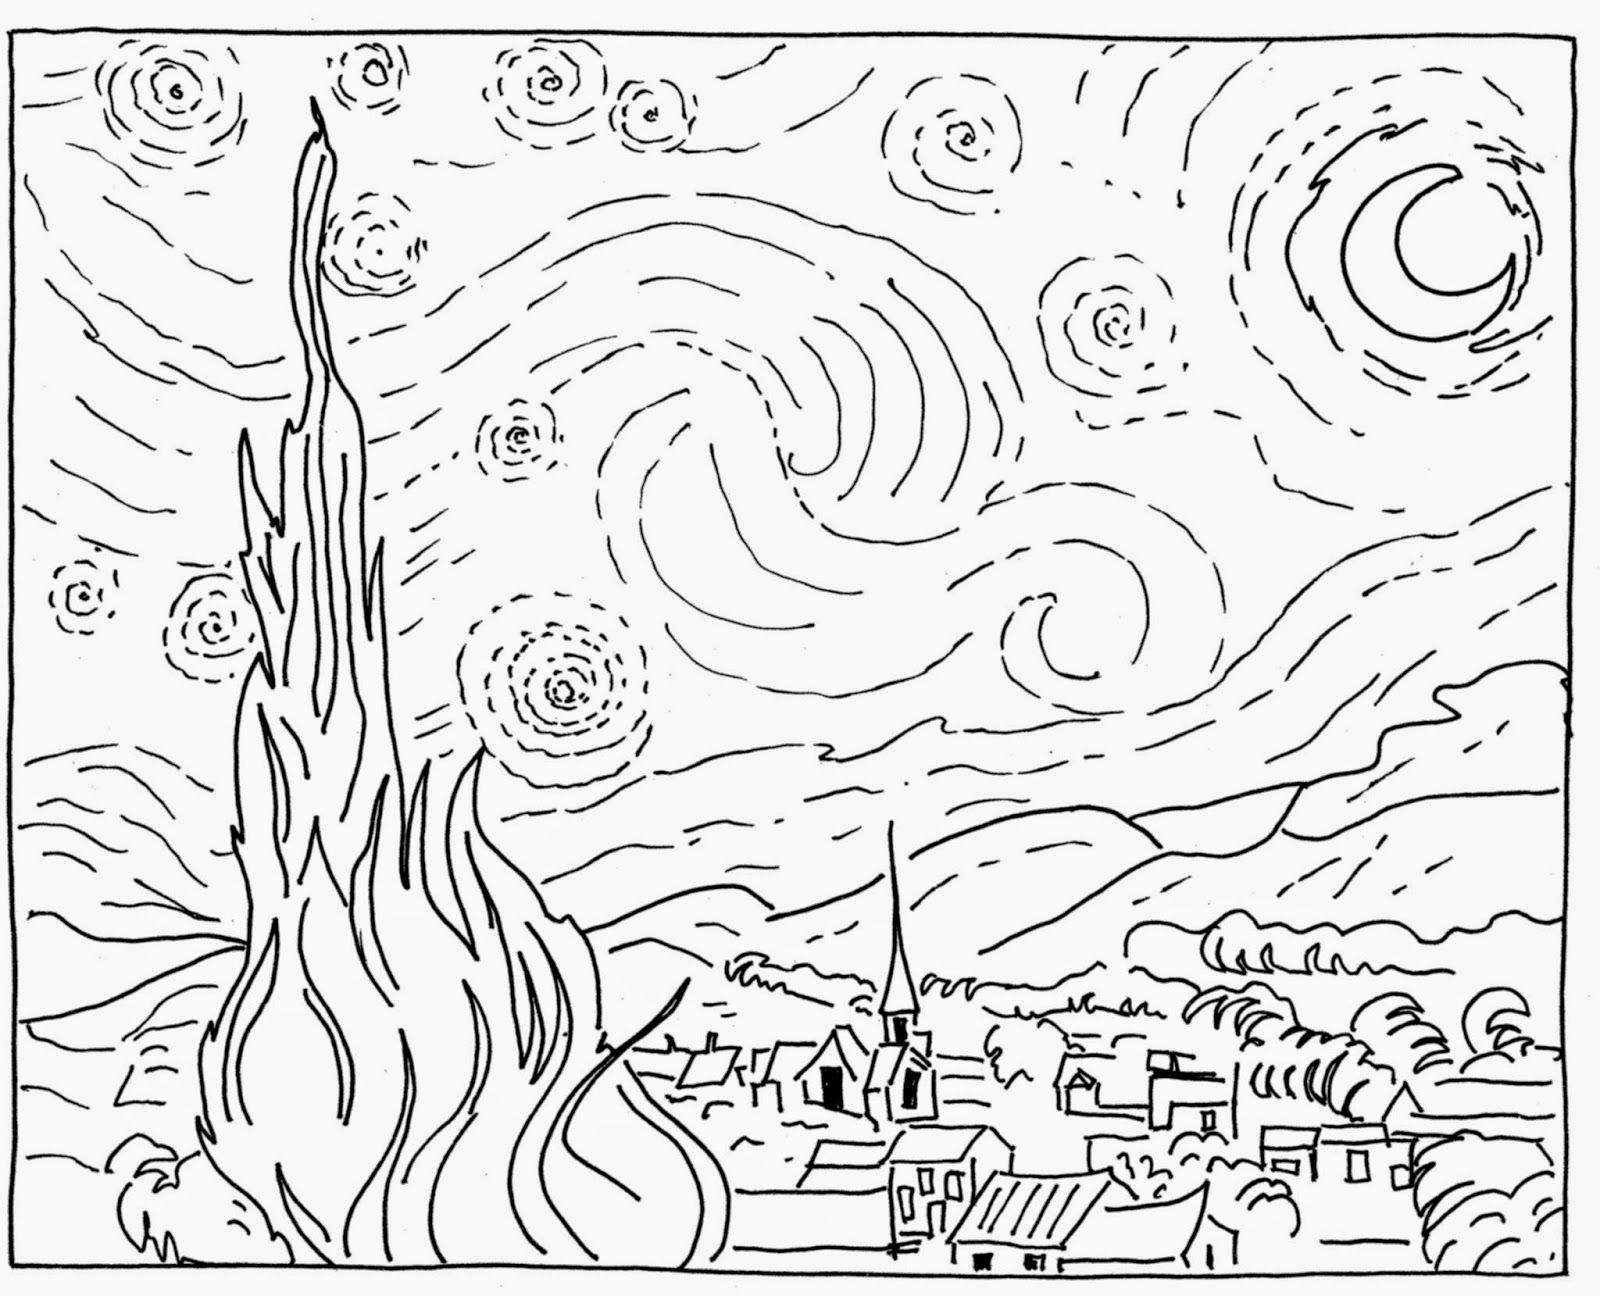 Starry Night By Vincent Van Gough Mini Masterpiece With Galt